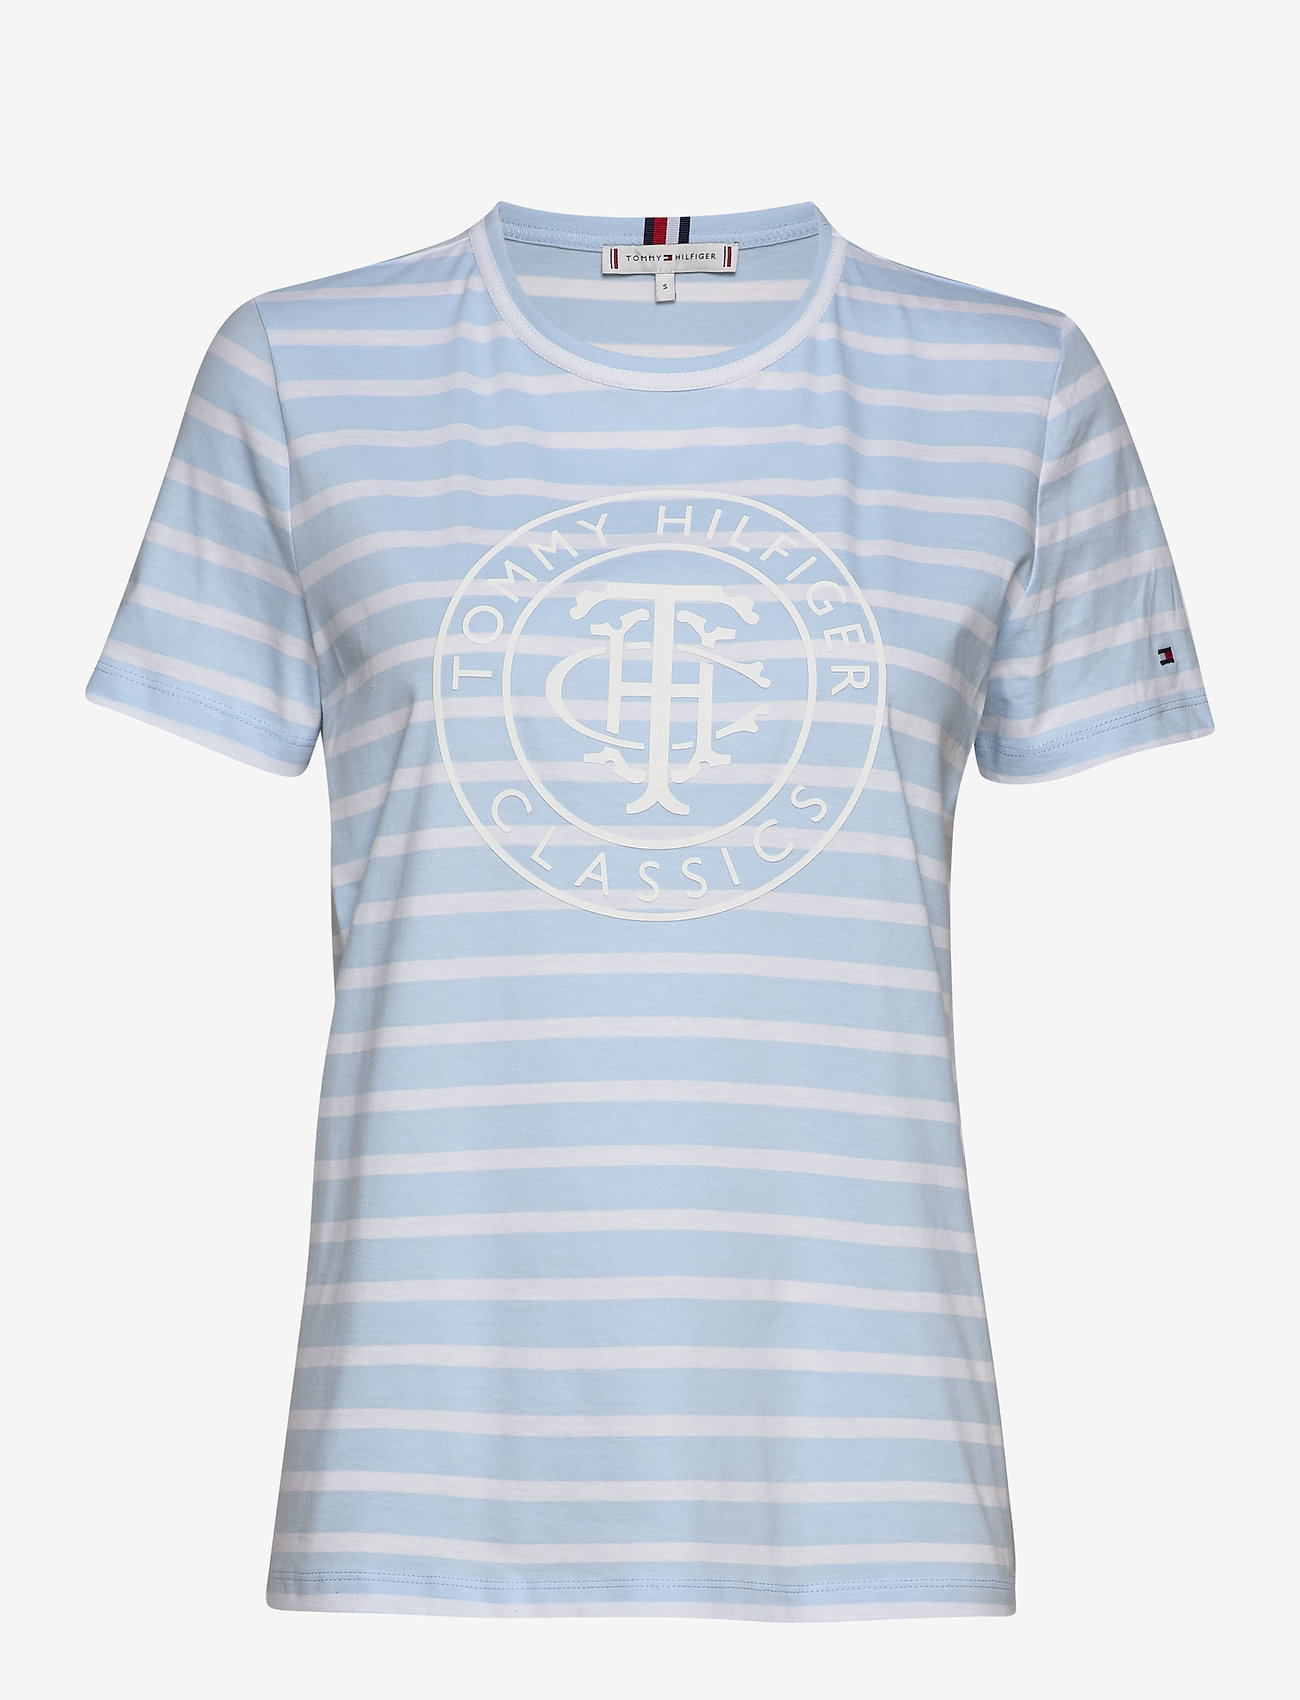 Tommy Hilfiger - TH COOL ESS RELAXED - t-shirts - breton stp / breezy blue white